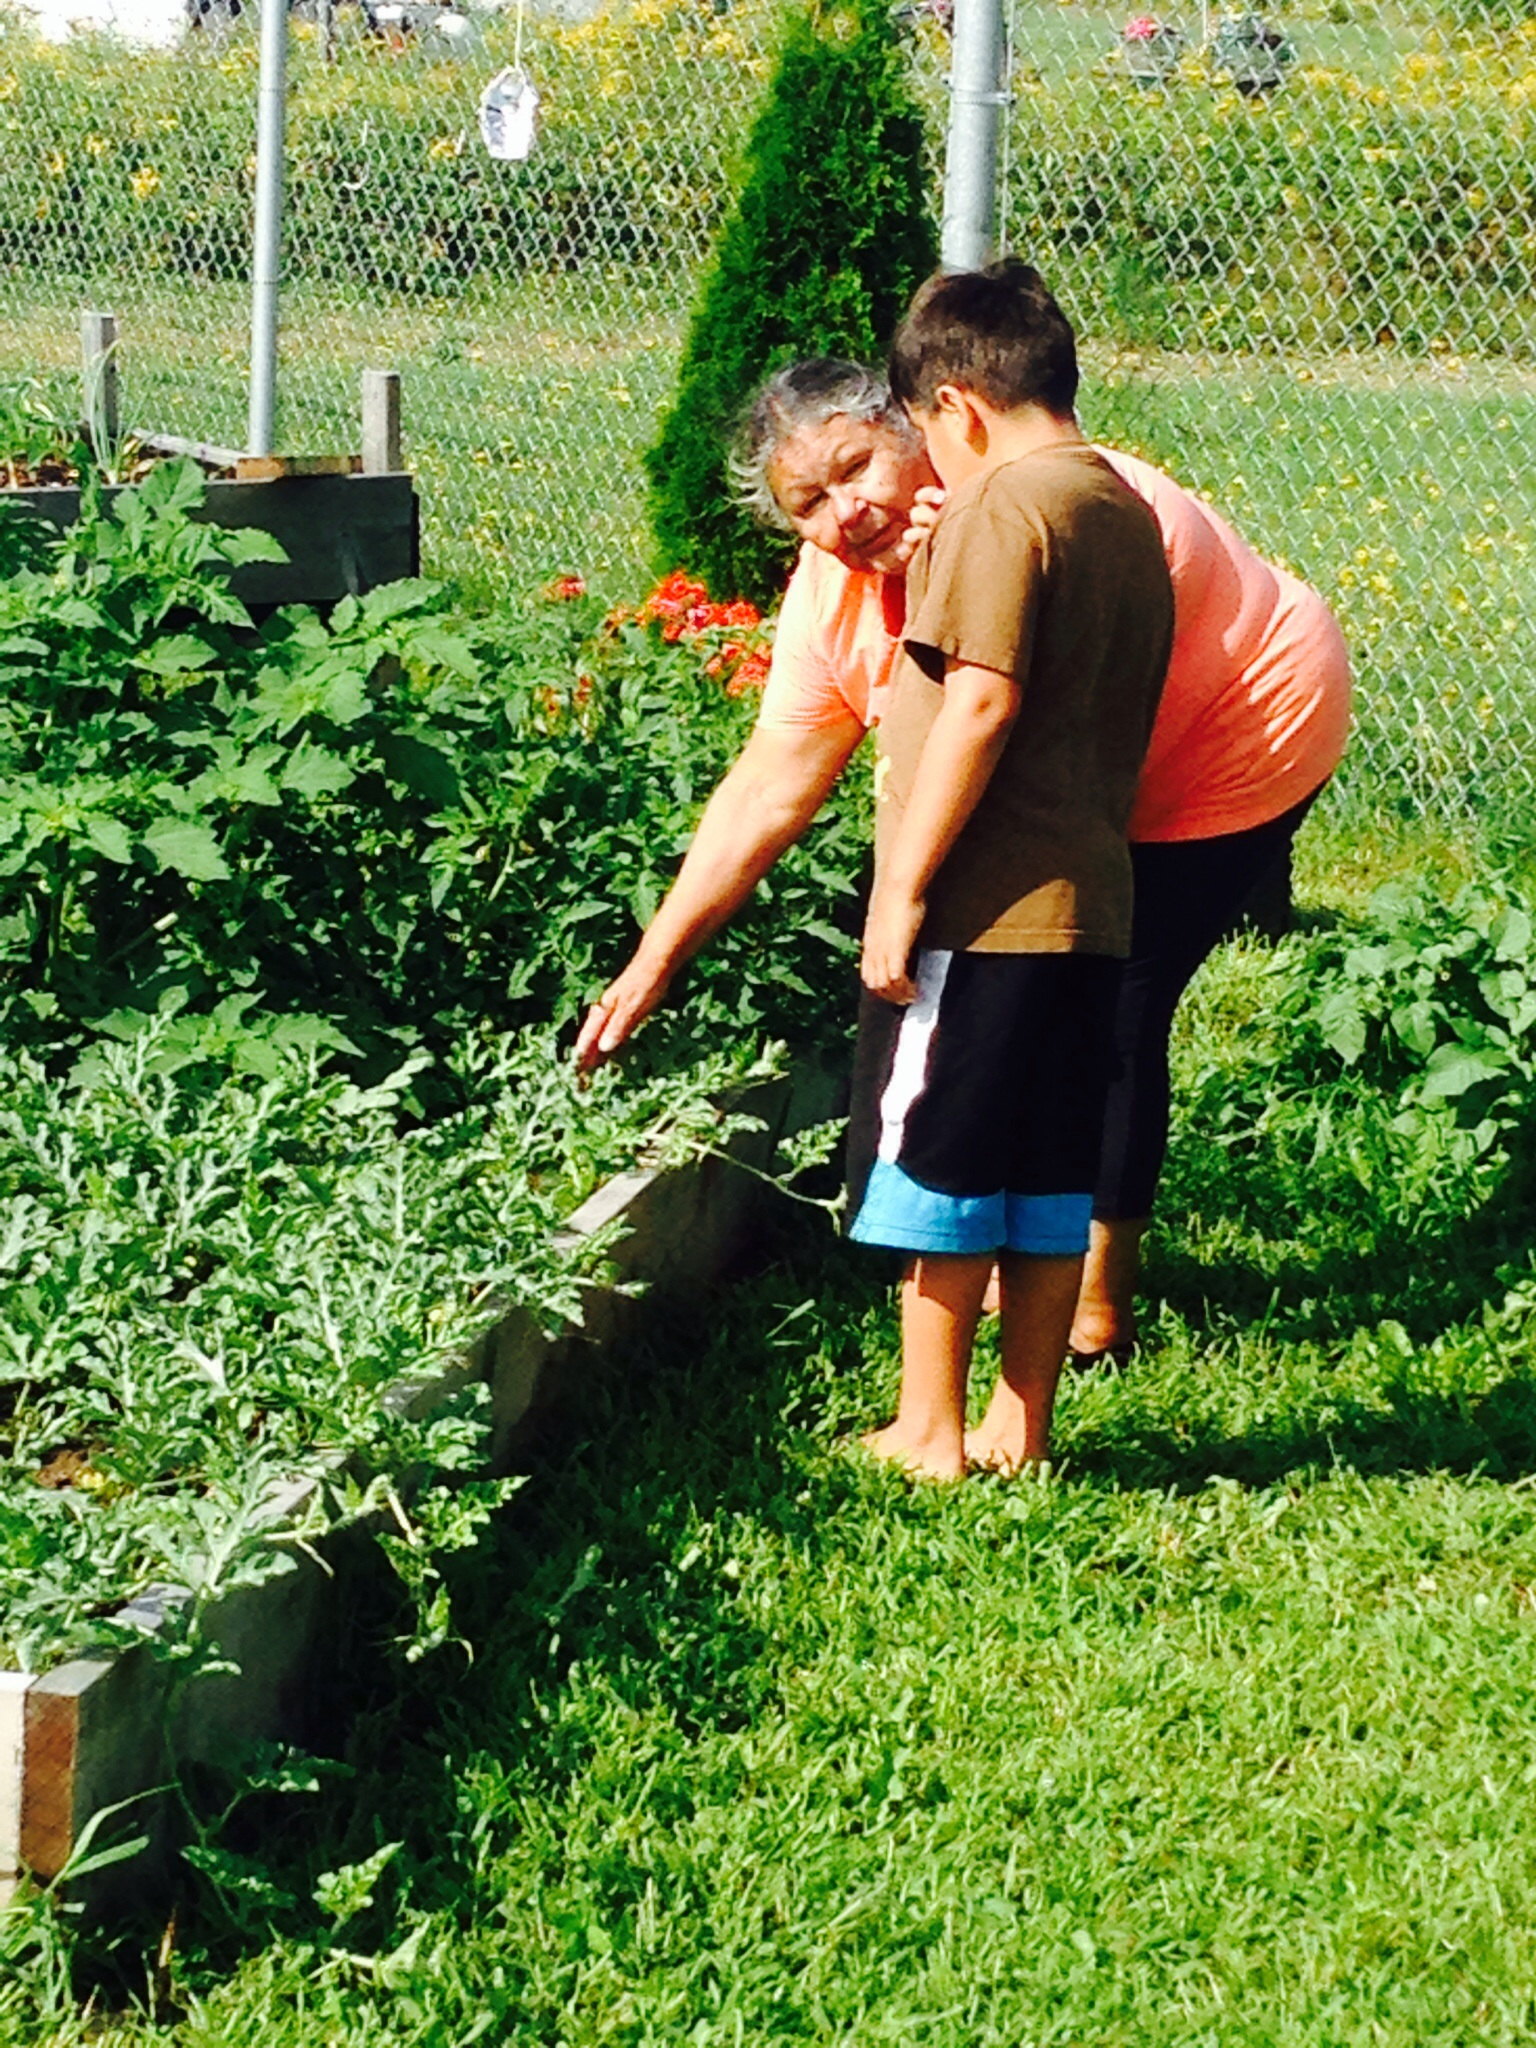 Elsipogtog garden coordinator and a summer visitor. The Elsipogtog School, NB.